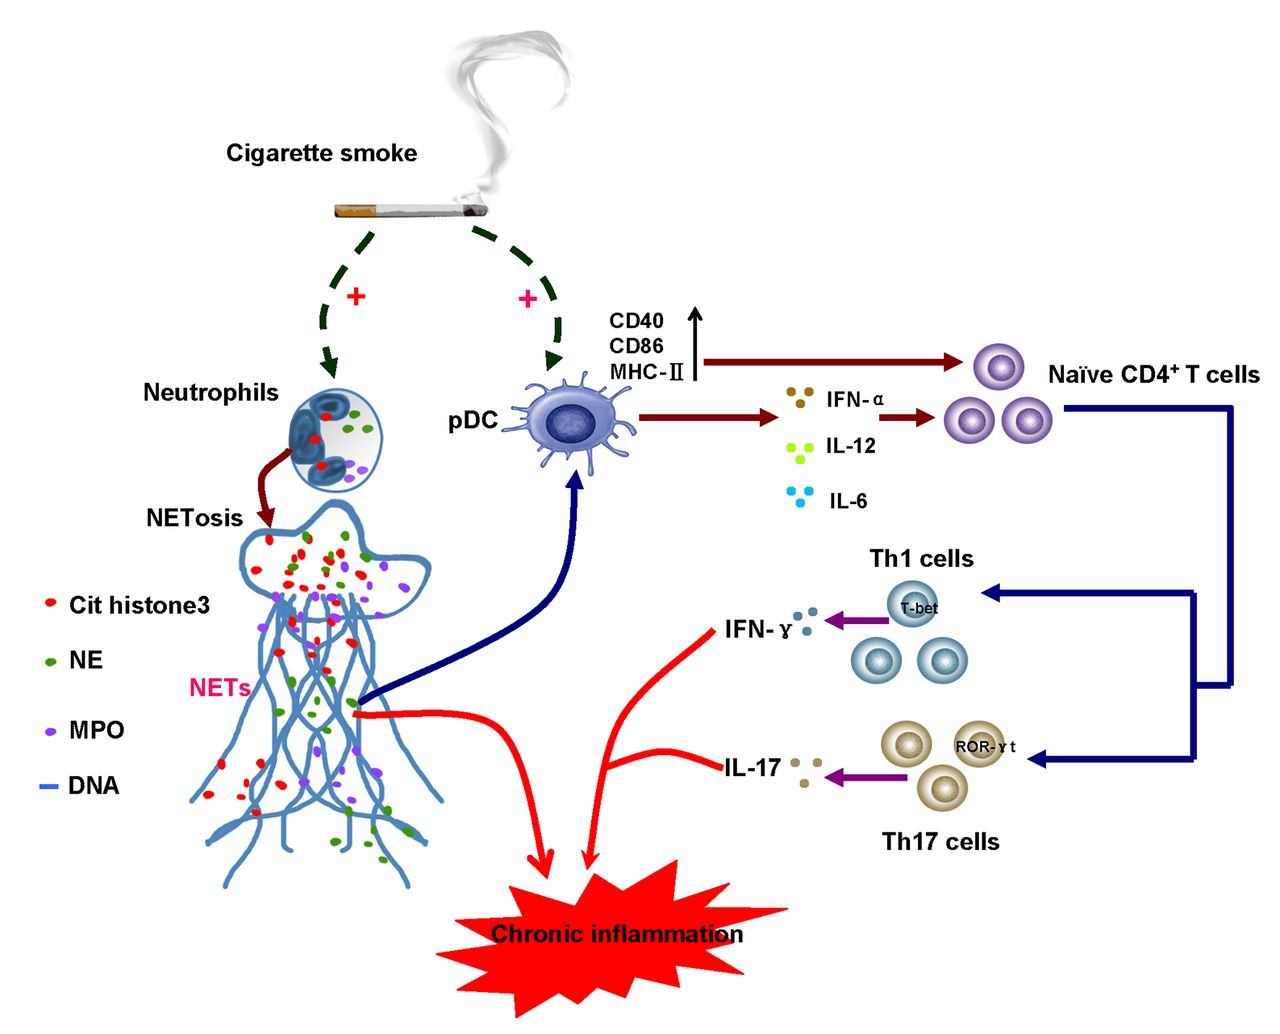 Neutrophil extracellular traps induced by cigarette smoke